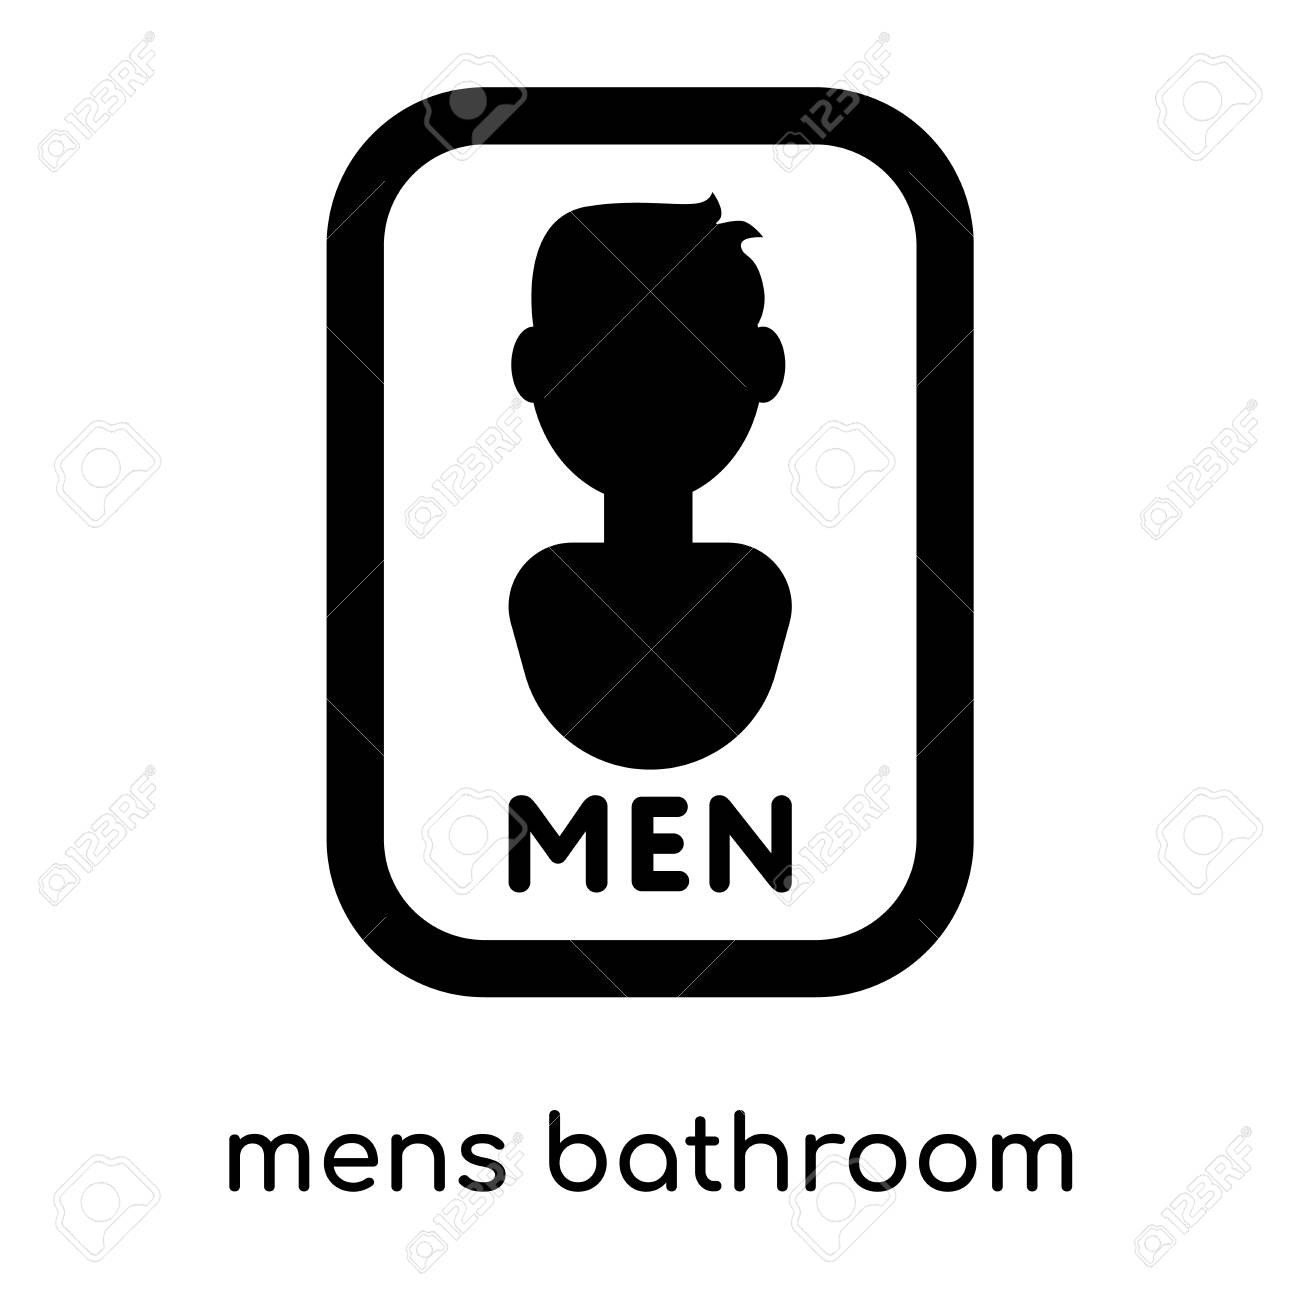 Image of: Men S Bathroom Sign Vector With Mens Bathroom Symbol Isolated On White Background For Your Web And Mobile App Design Black Mens Bathroom Symbol Isolated On White Background For Your Web